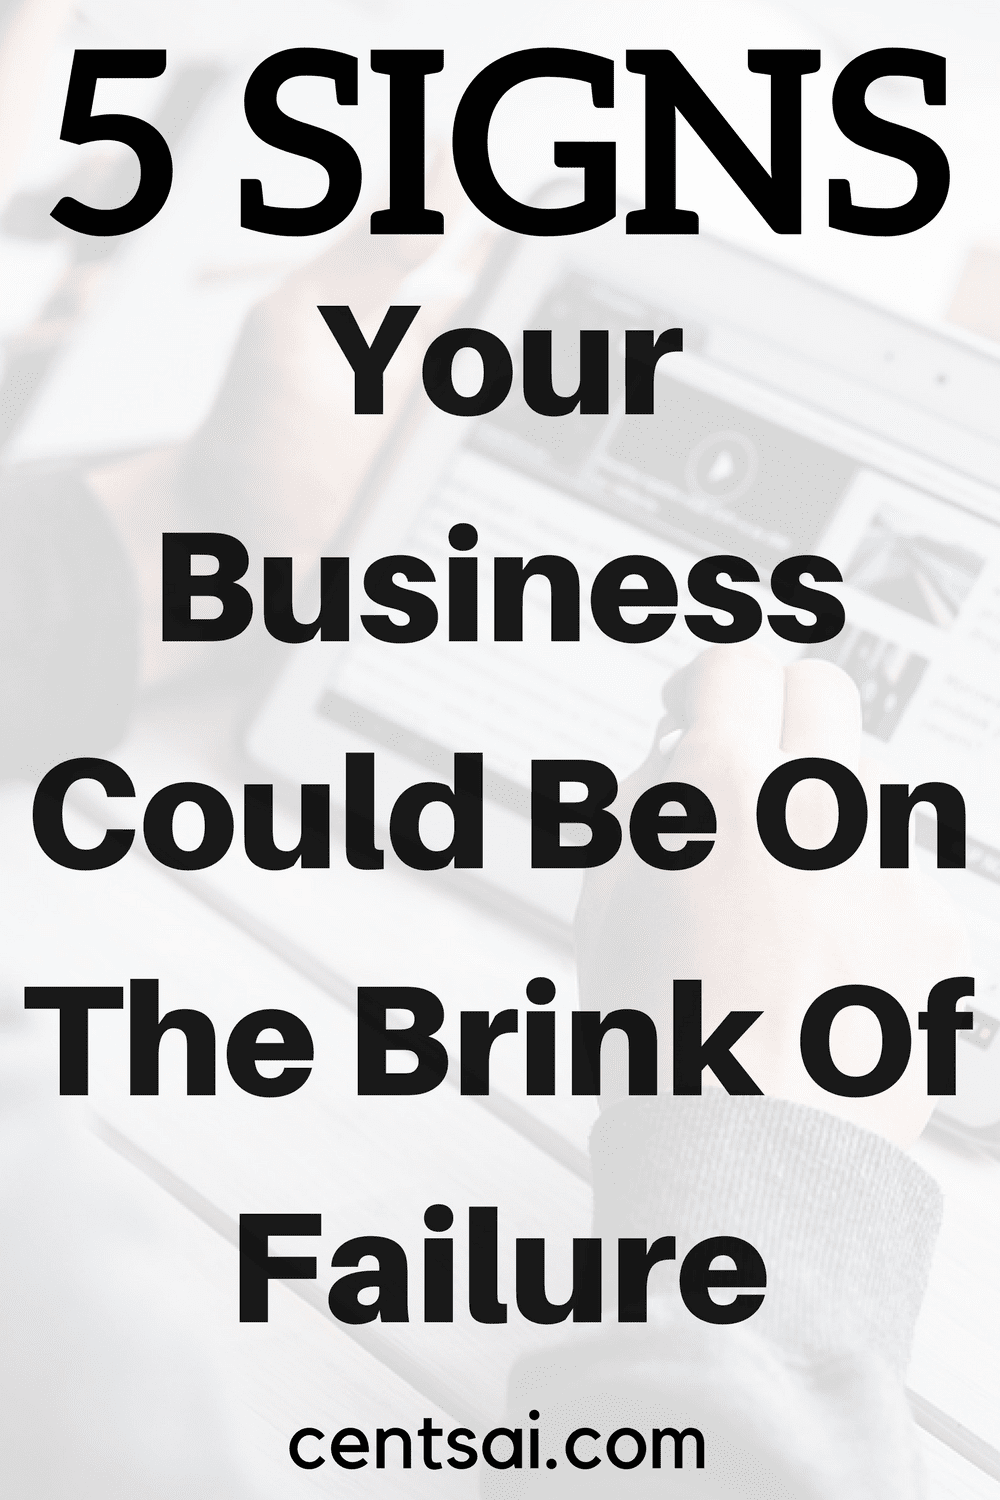 5 Signs Your Business Could Be On The Brink Of Failure. Owning a Laundromat isn't easy, and if you're not careful, it's easy to miss - or ignore - fatal mistakes out of sheer stubbornness.